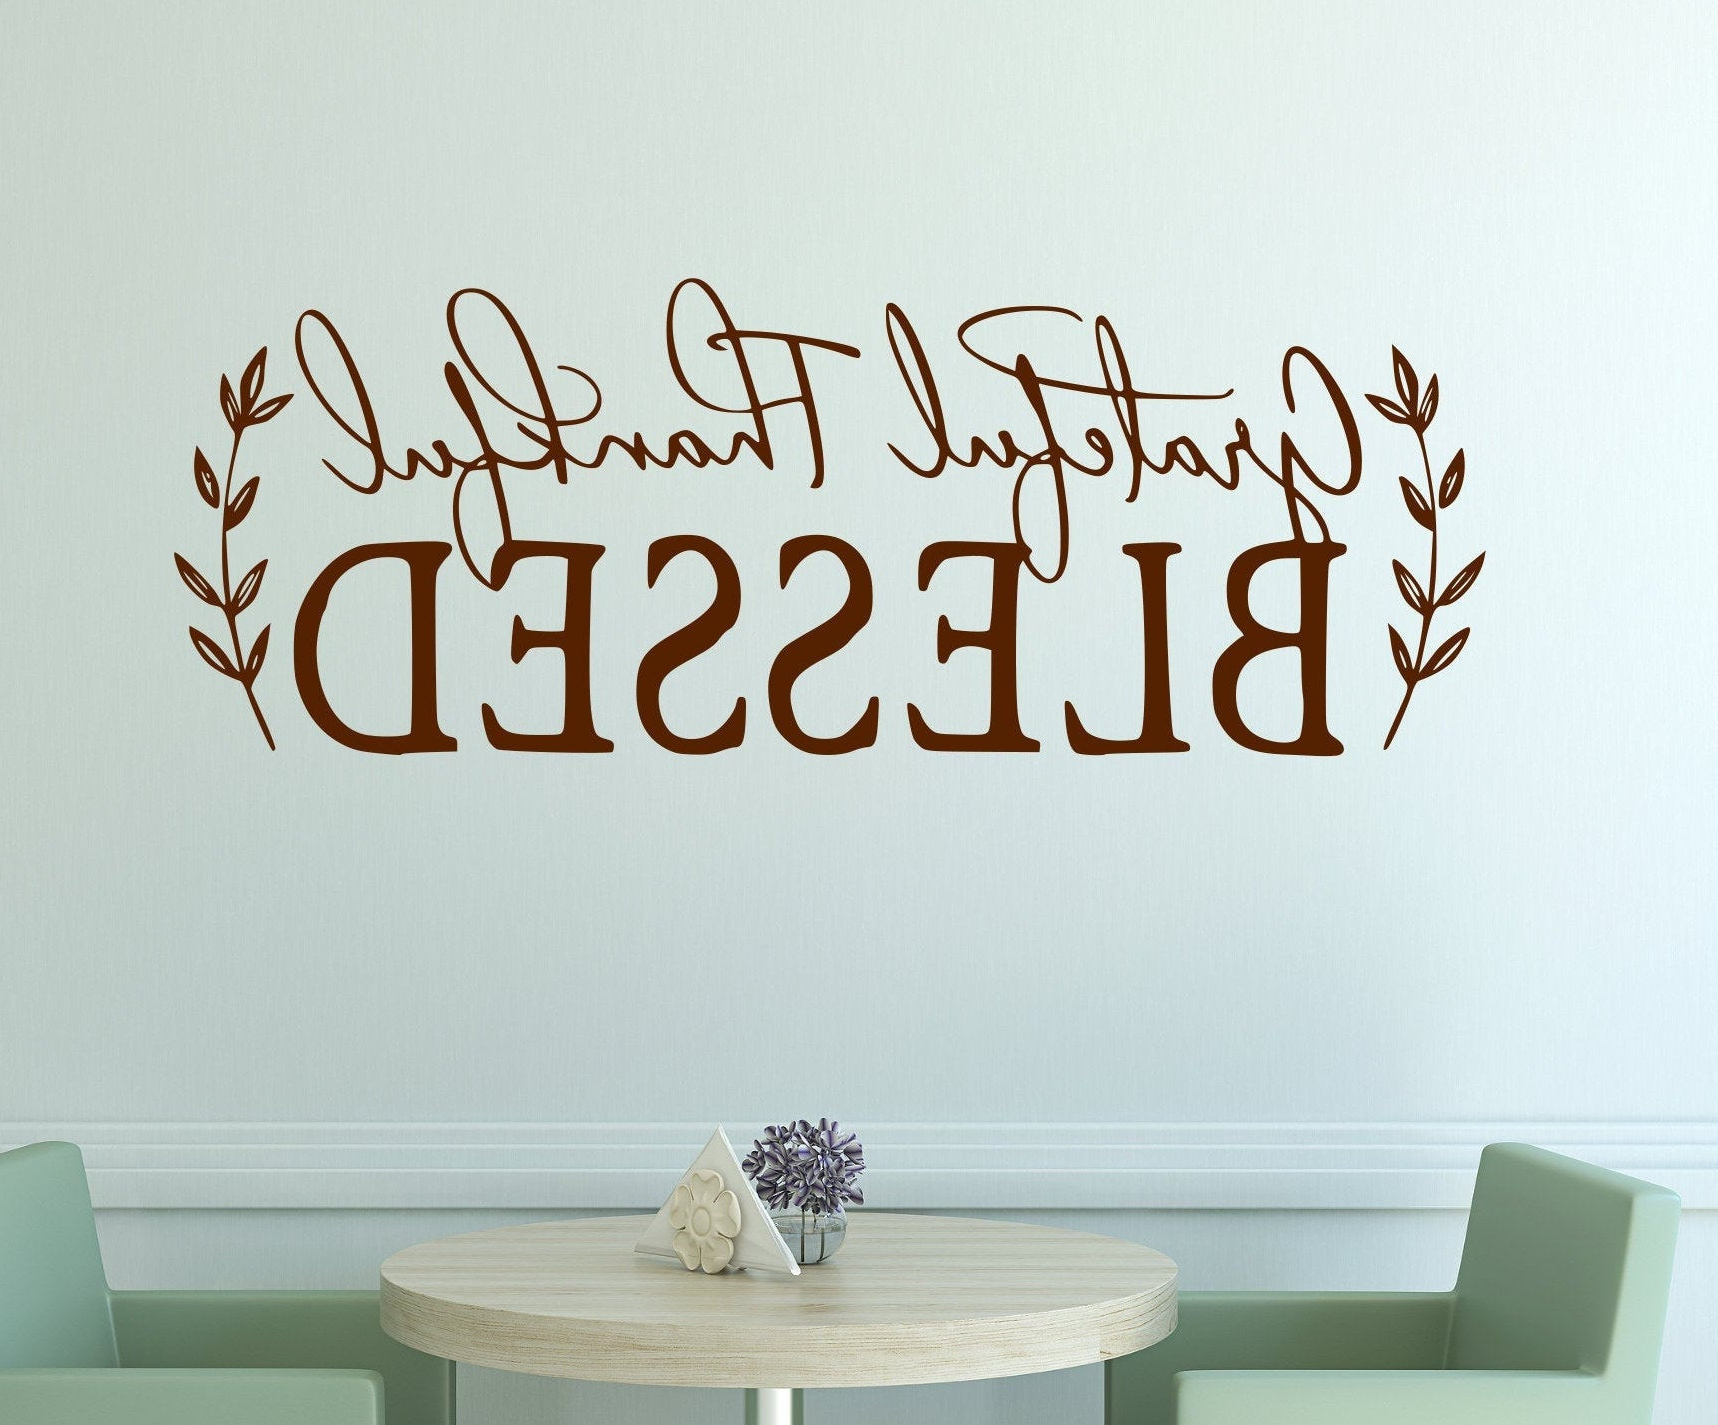 Grateful, Thankful, Blessed Wall Decor Intended For Preferred Farmhouse Decal, Grateful Thankful Blessed, Farmhouse Wall (View 13 of 20)